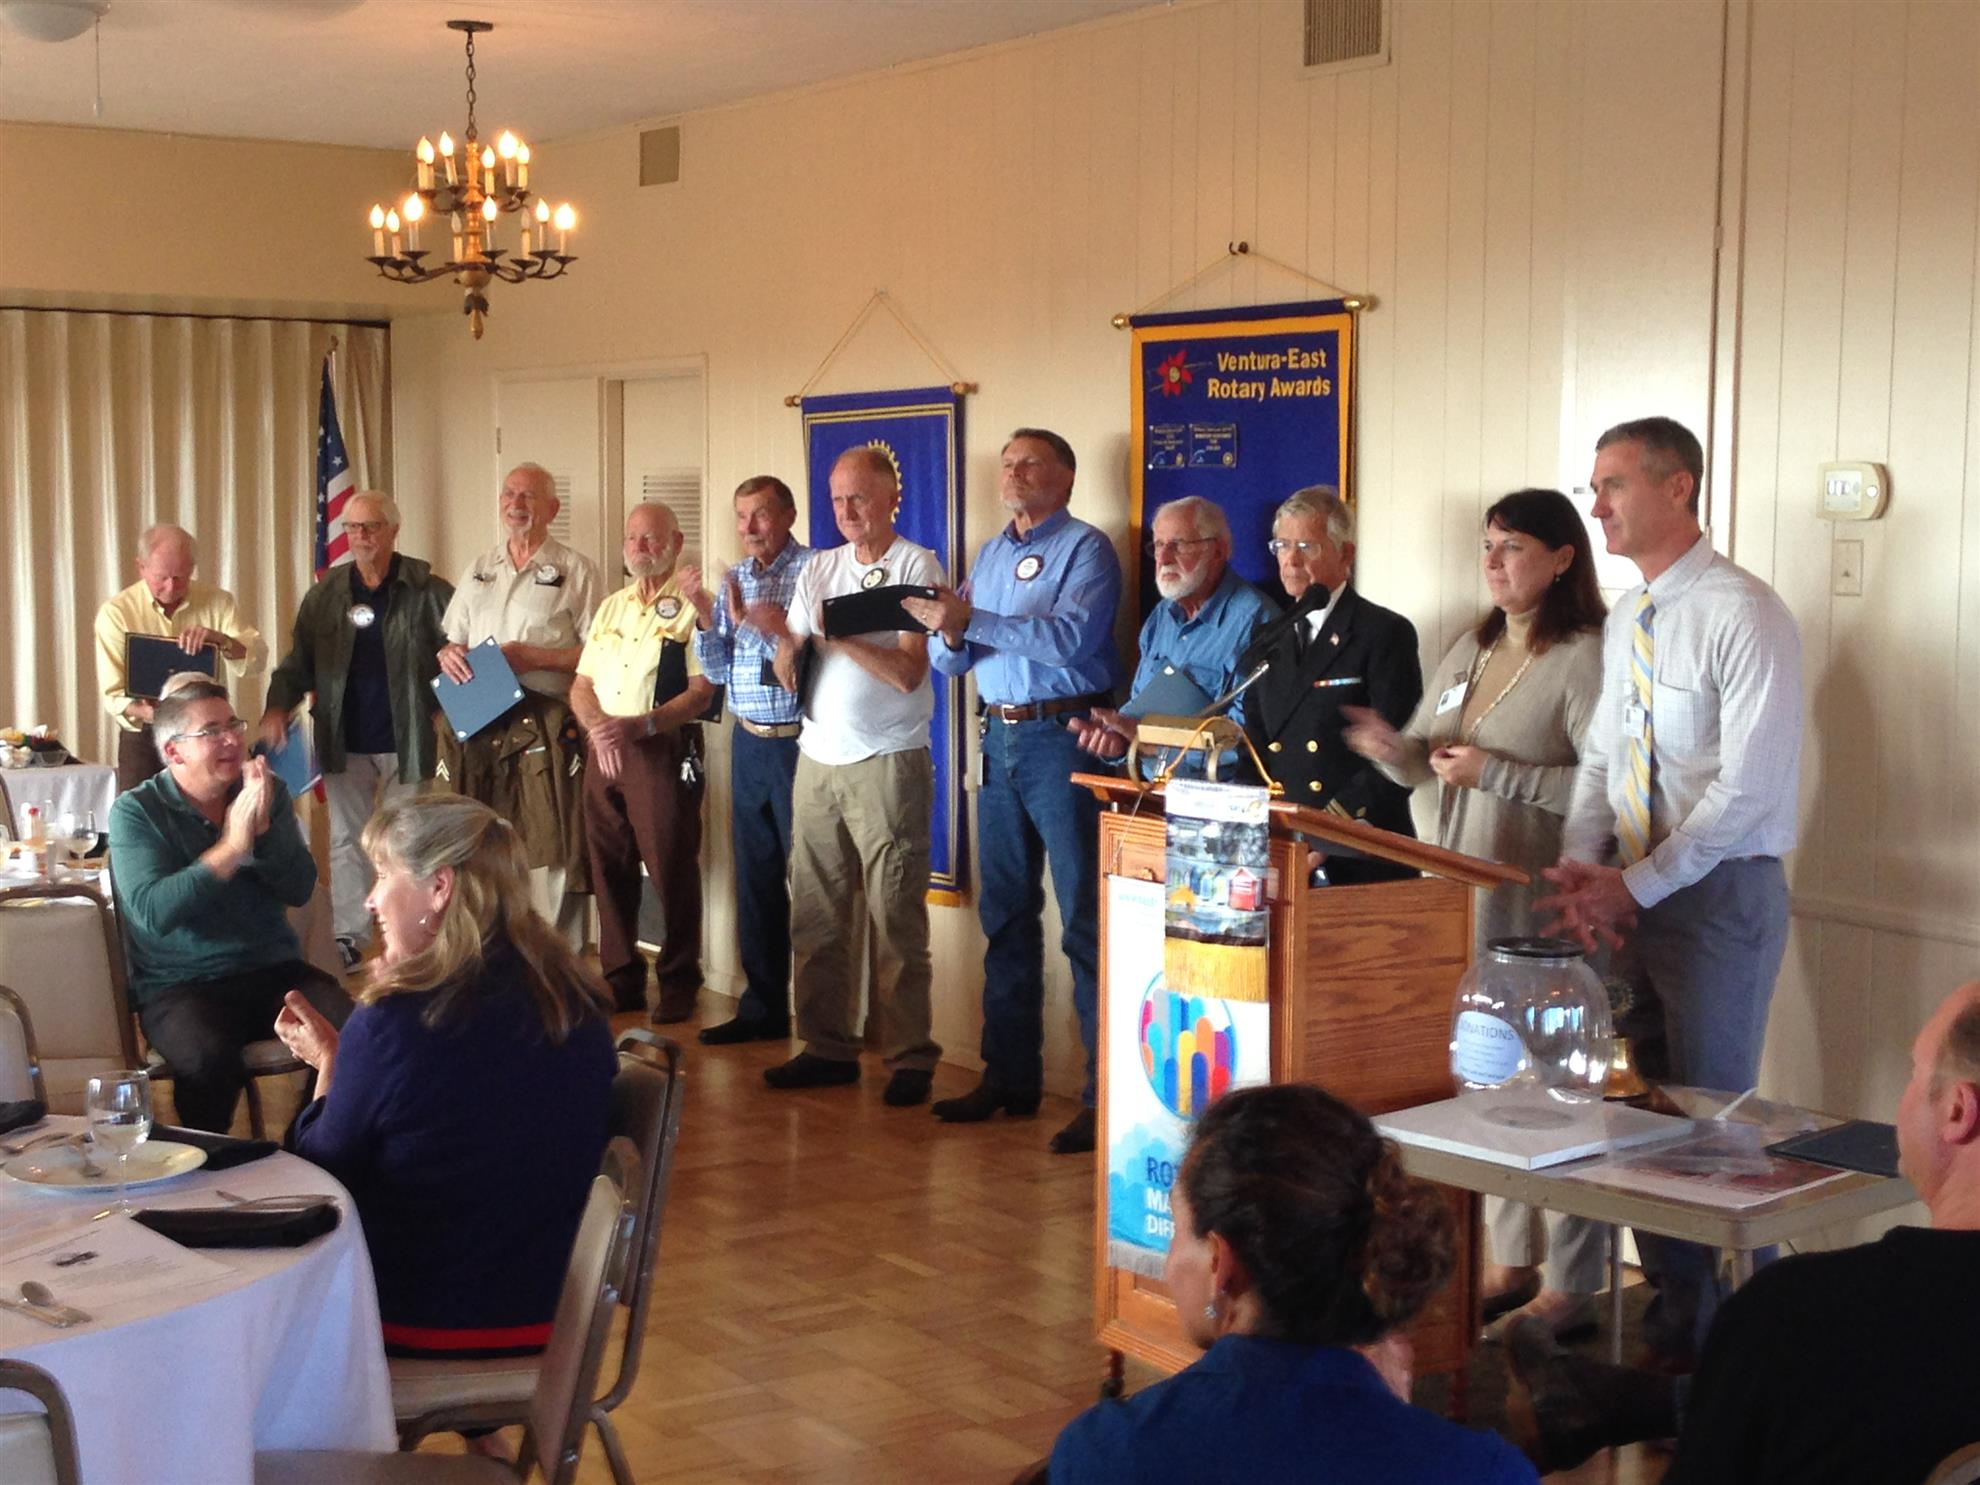 Stories | Rotary Club of Ventura East